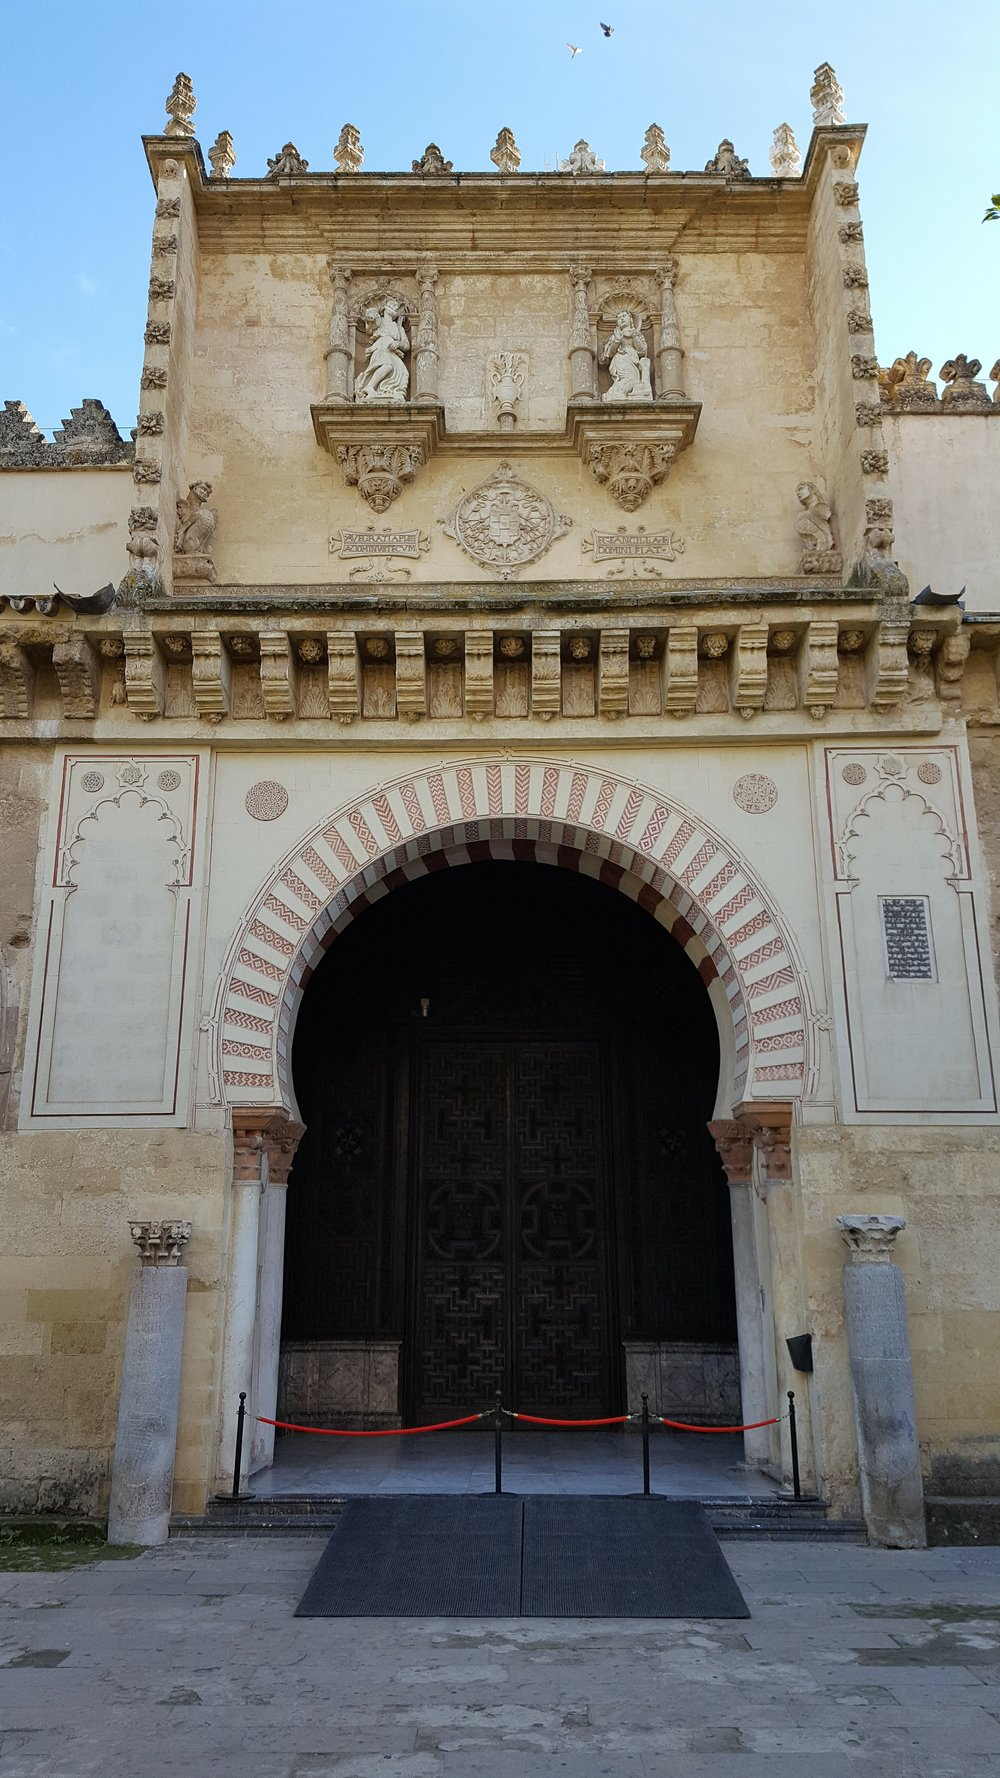 Entrance to the Mezquita in Córdoba